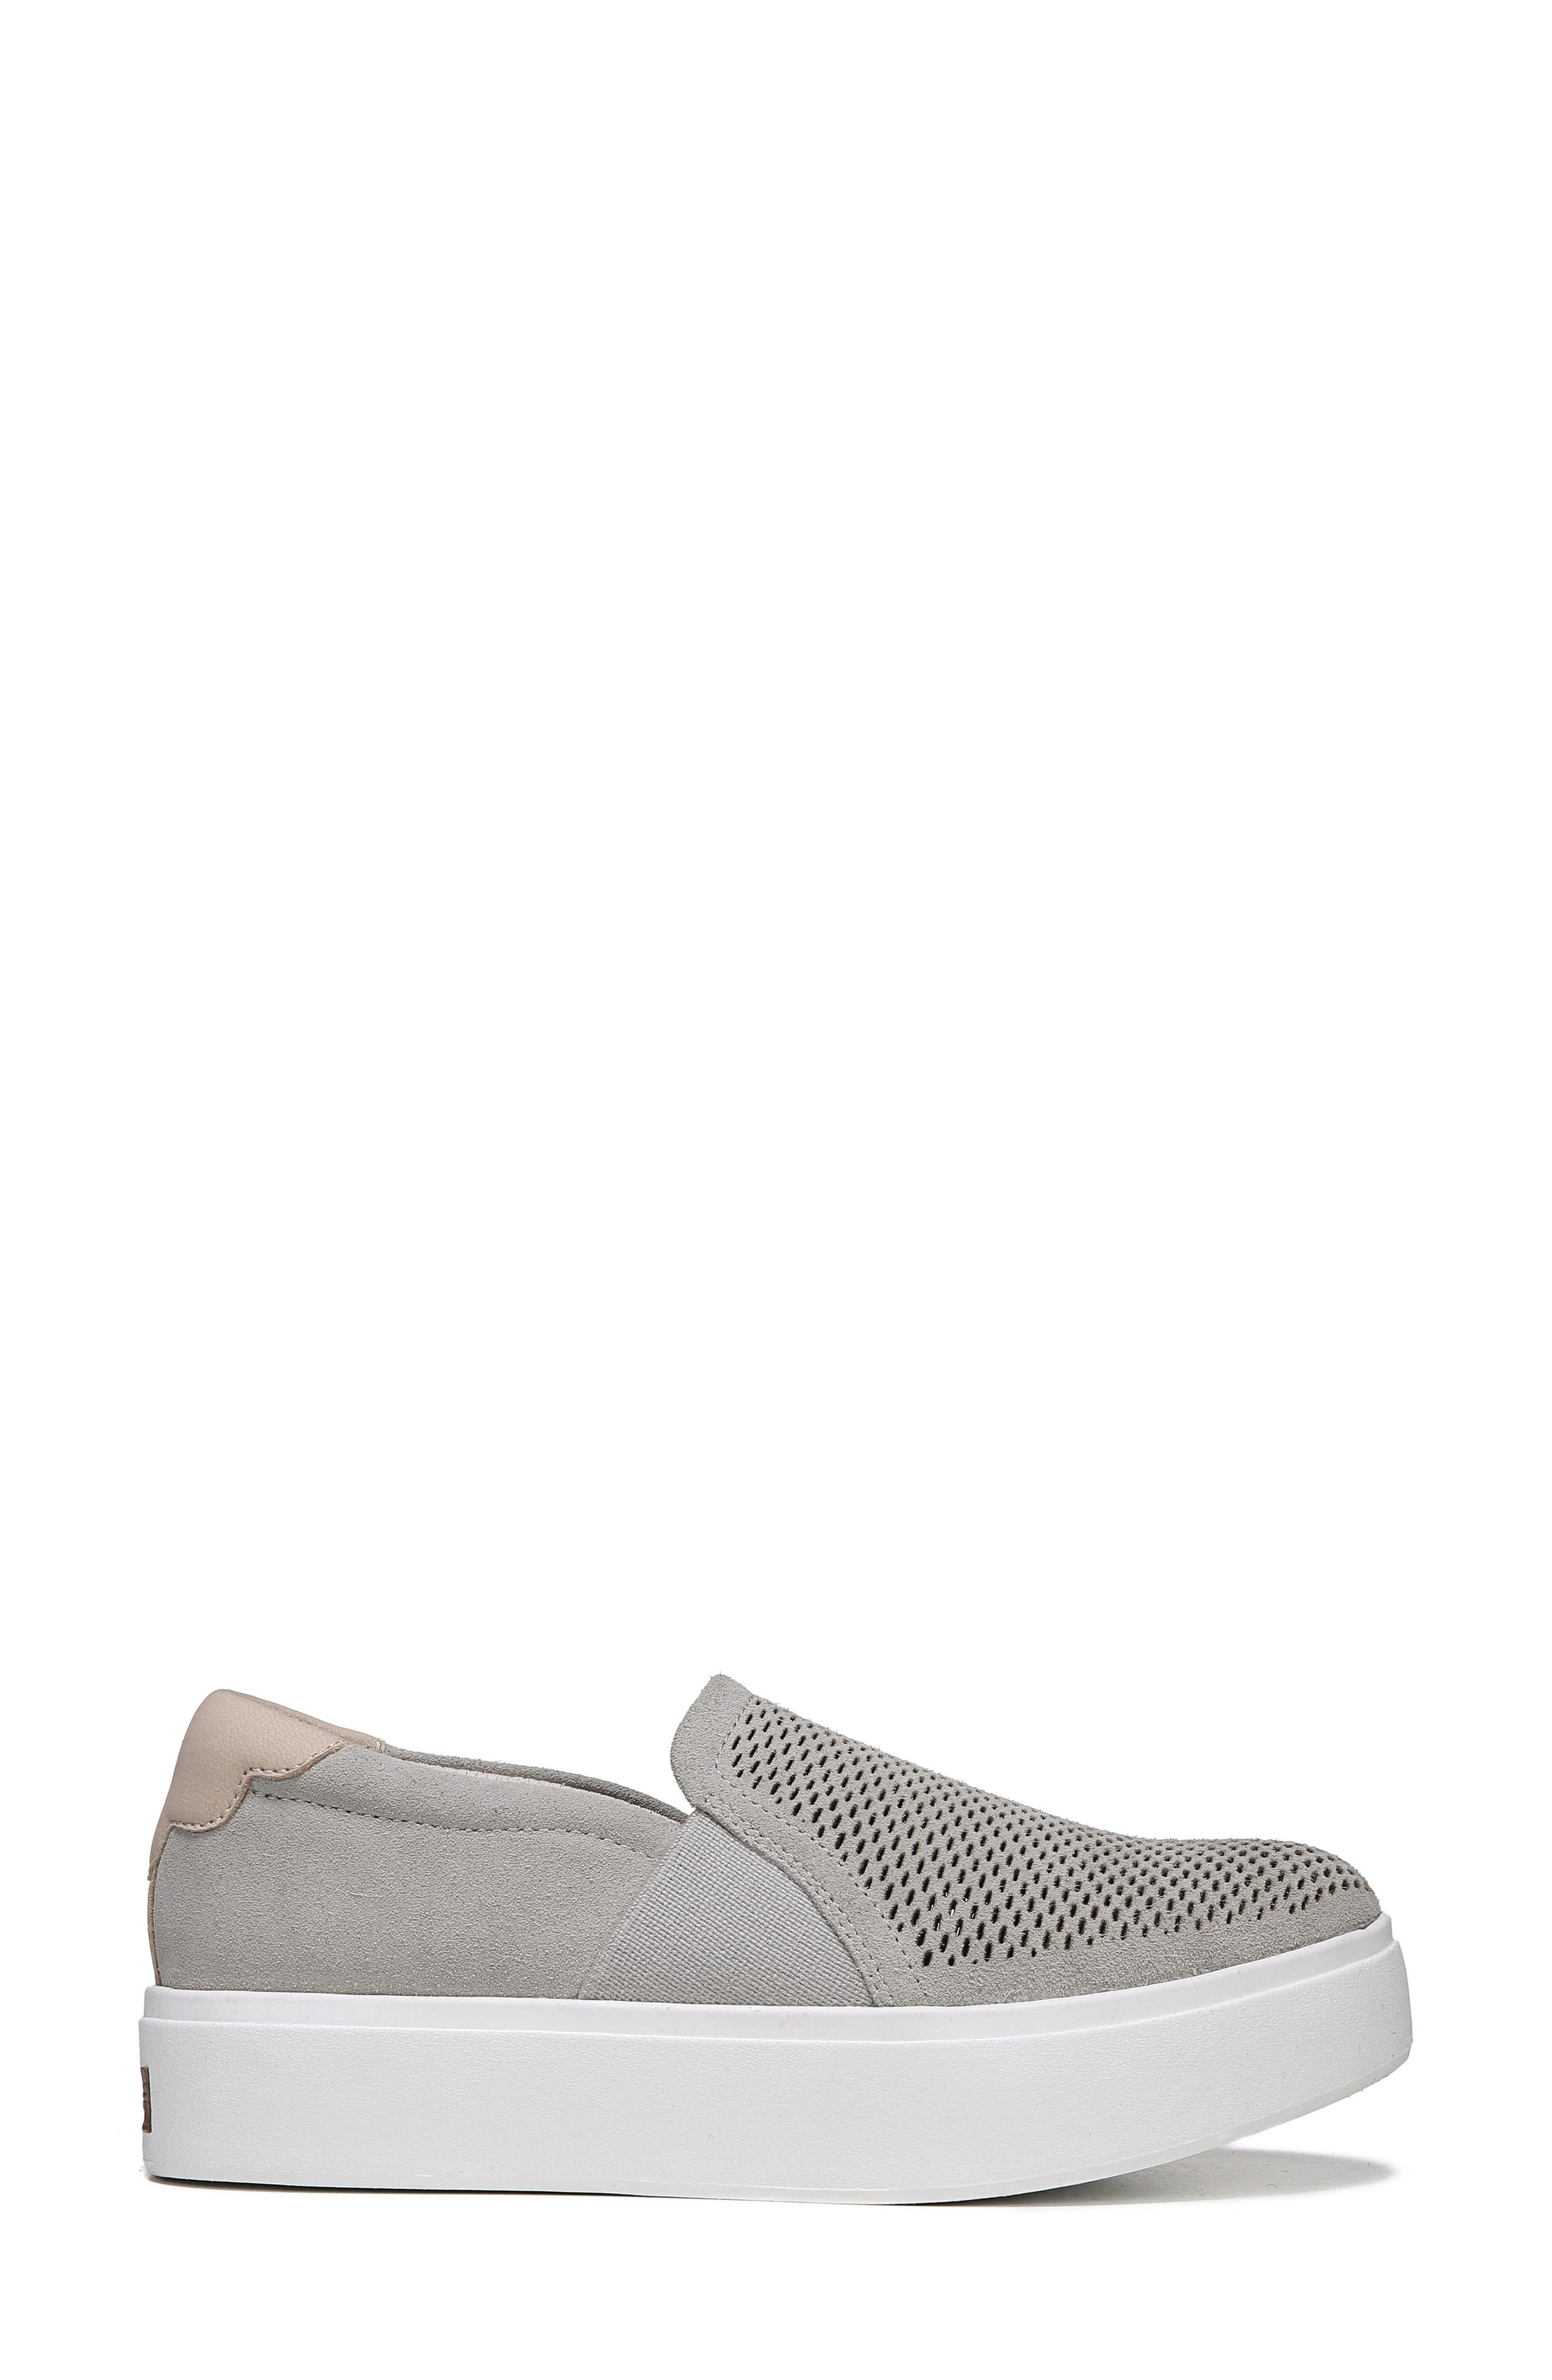 Abbot Lux Sneaker,                             Alternate thumbnail 3, color,                             GREY LEATHER